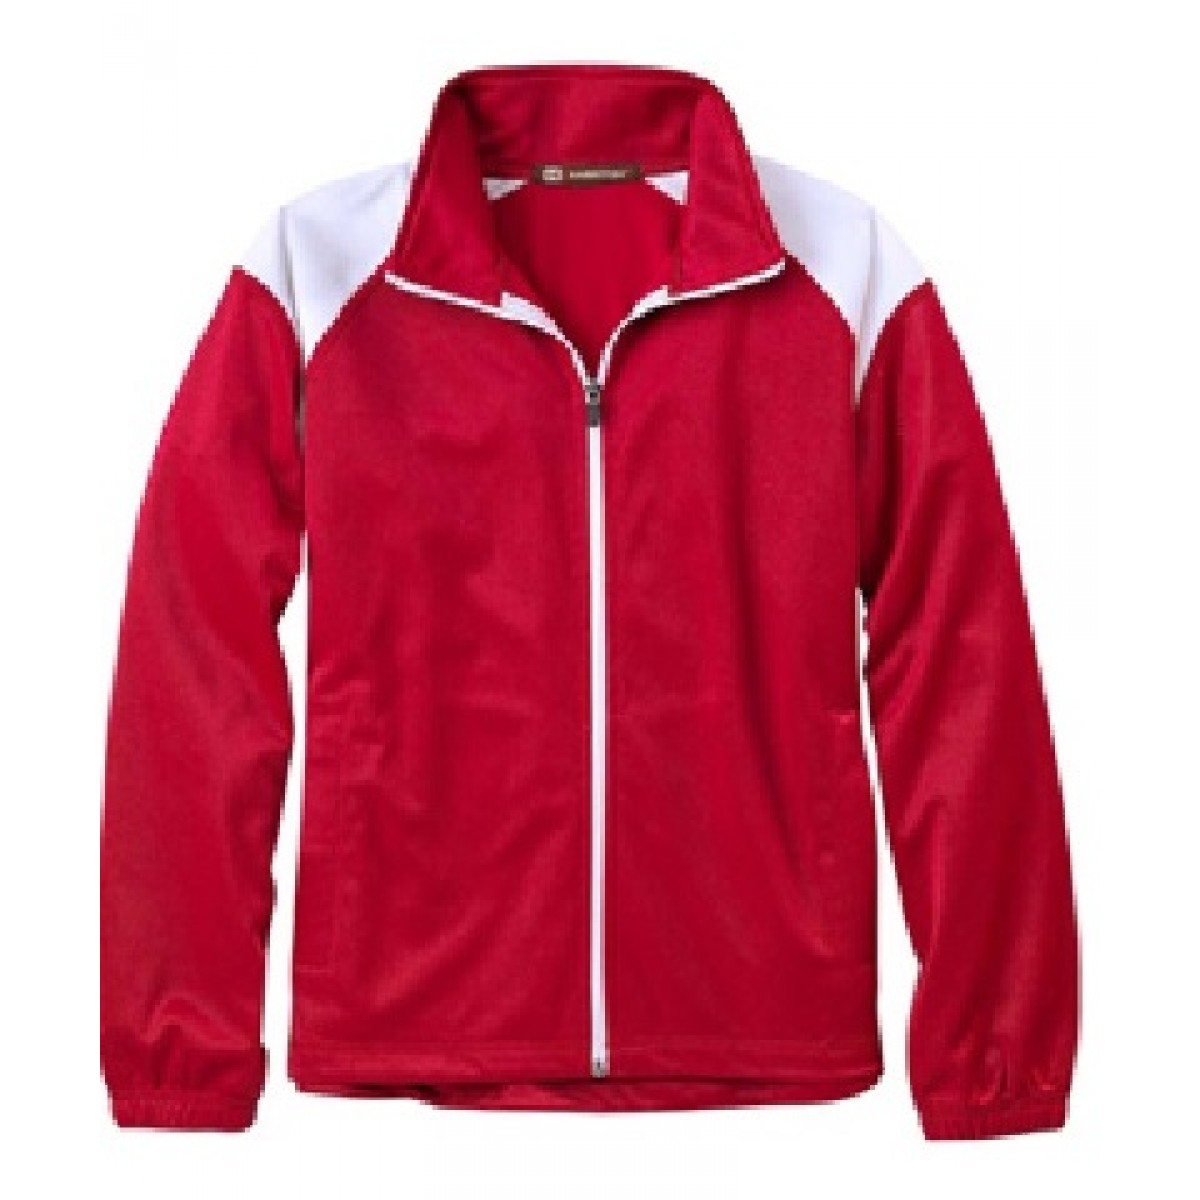 Embroidered Red Tricot Track Jacket-Red-XL